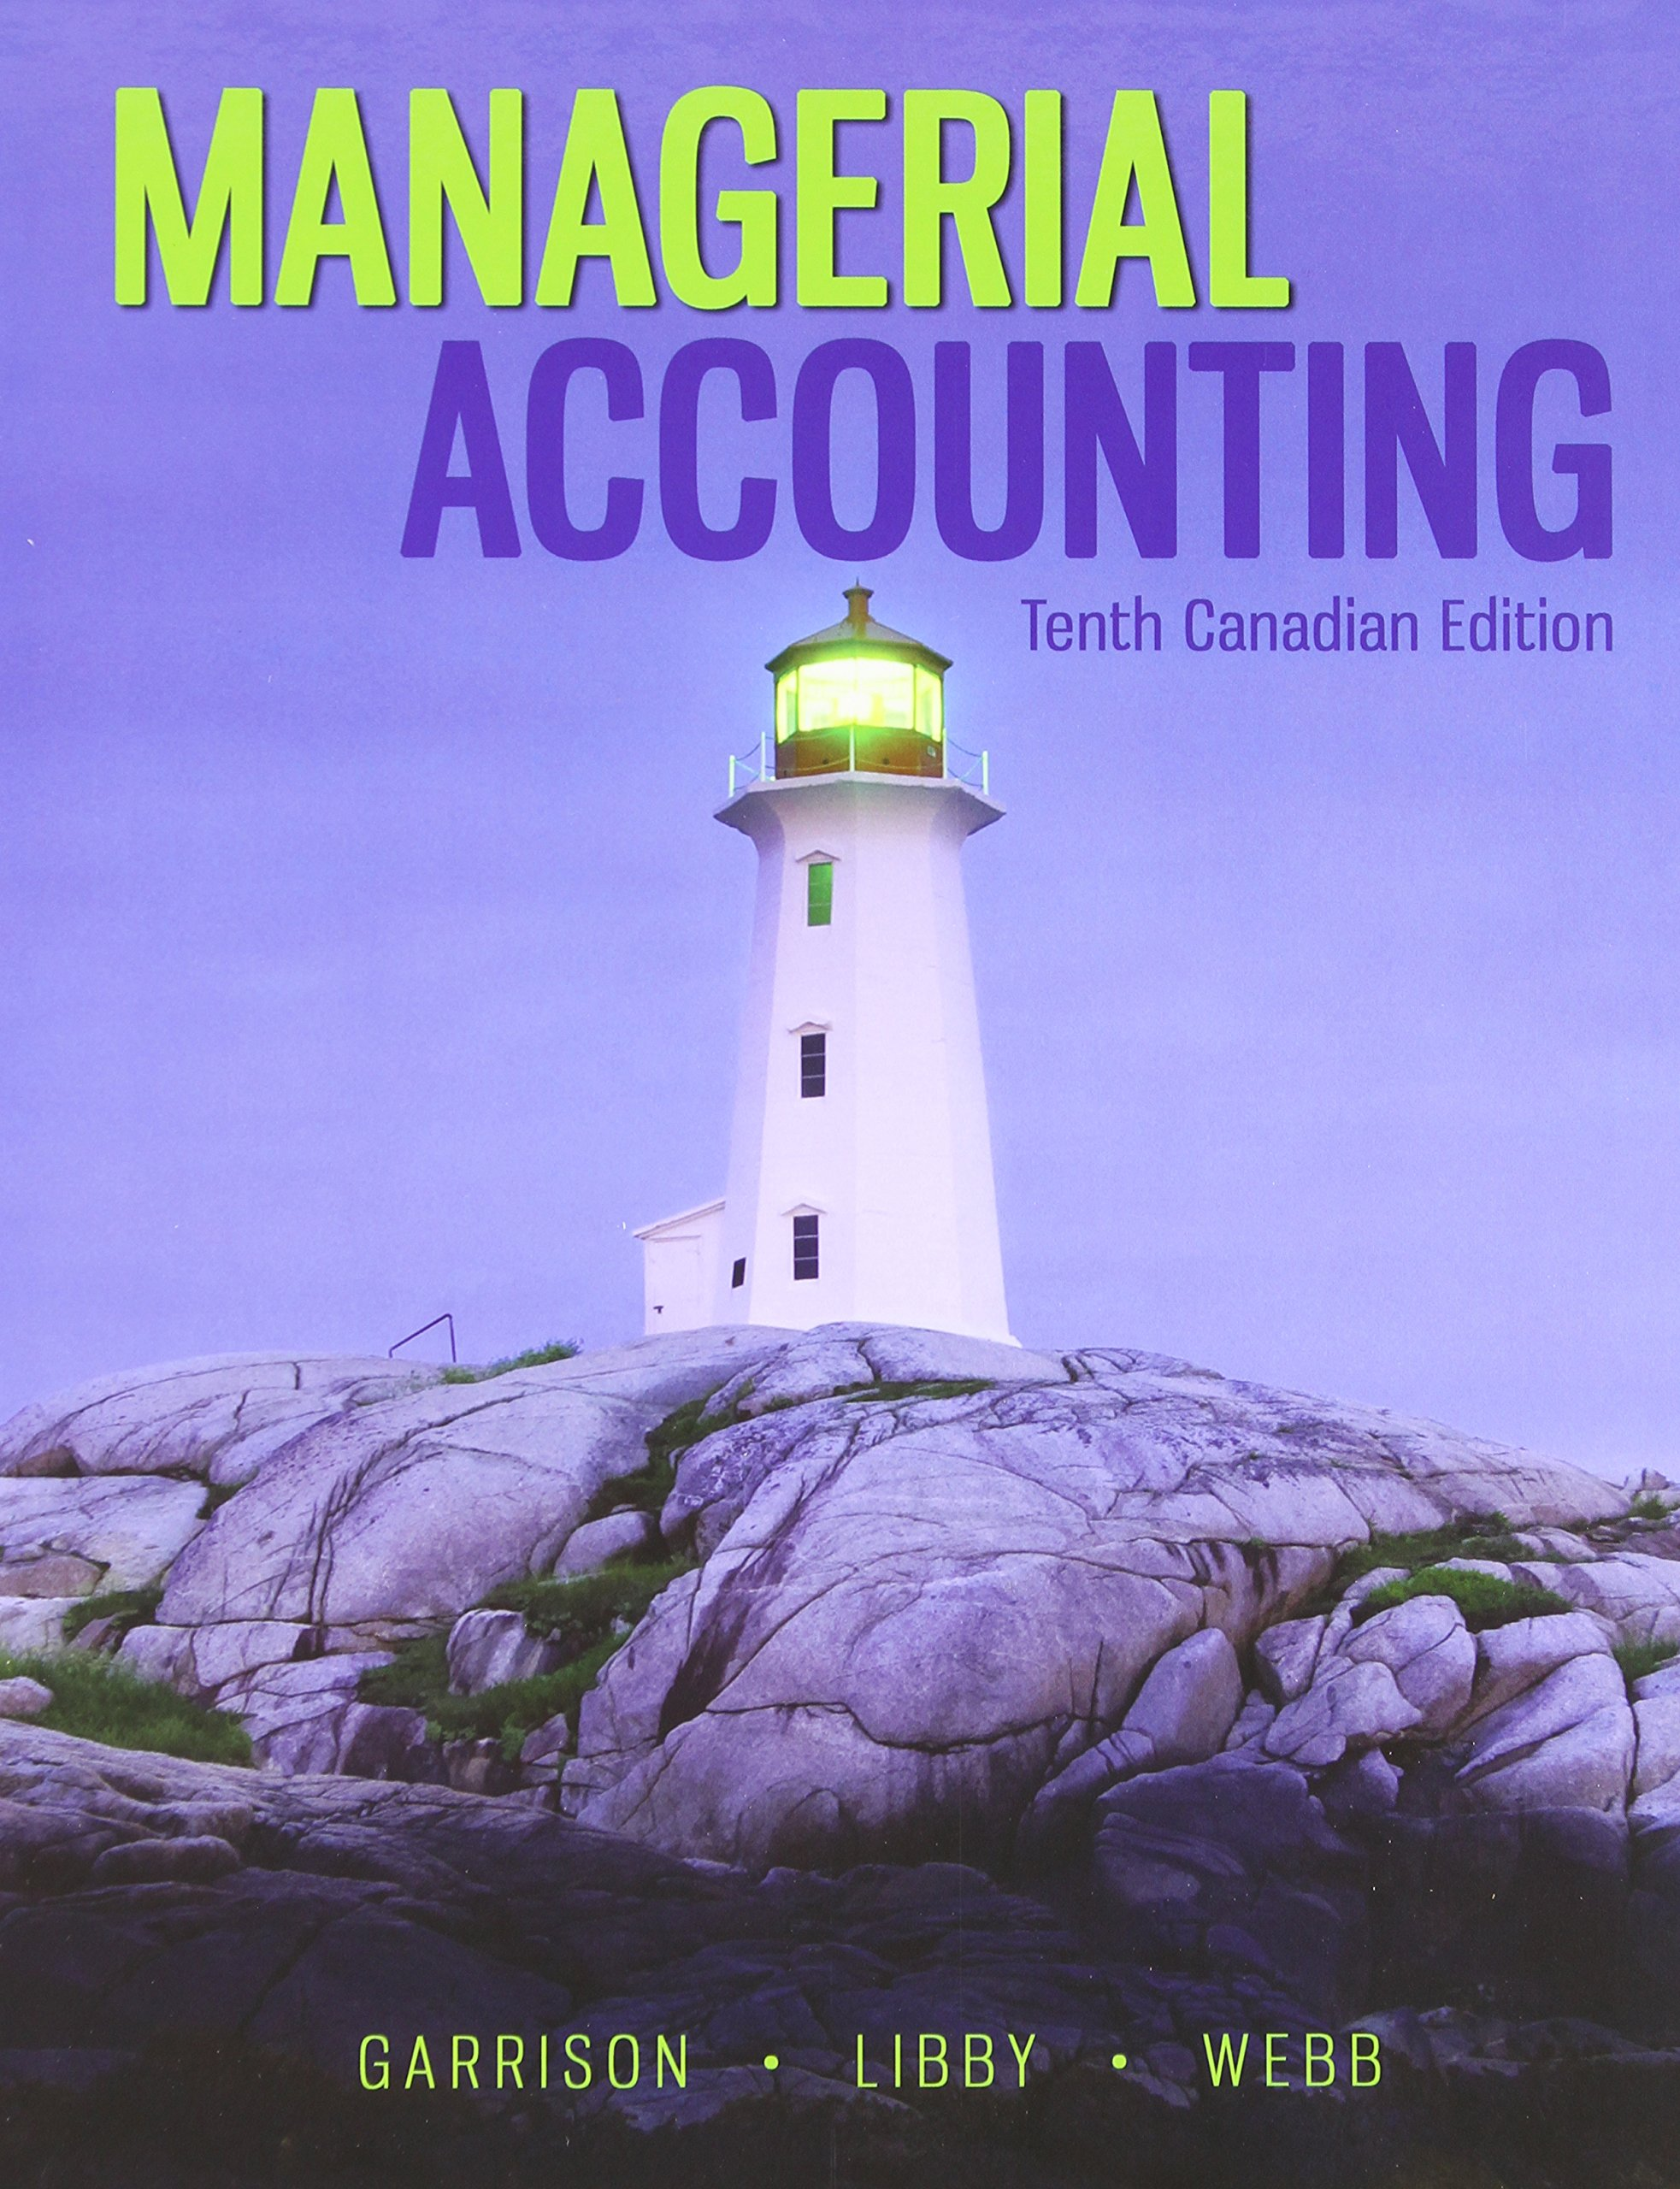 Managerial accounting with connect with smartbook ppk ray h managerial accounting with connect with smartbook ppk ray h garrison g richard chesley ray f carroll alan webb theresa libby 9781259103278 books fandeluxe Image collections